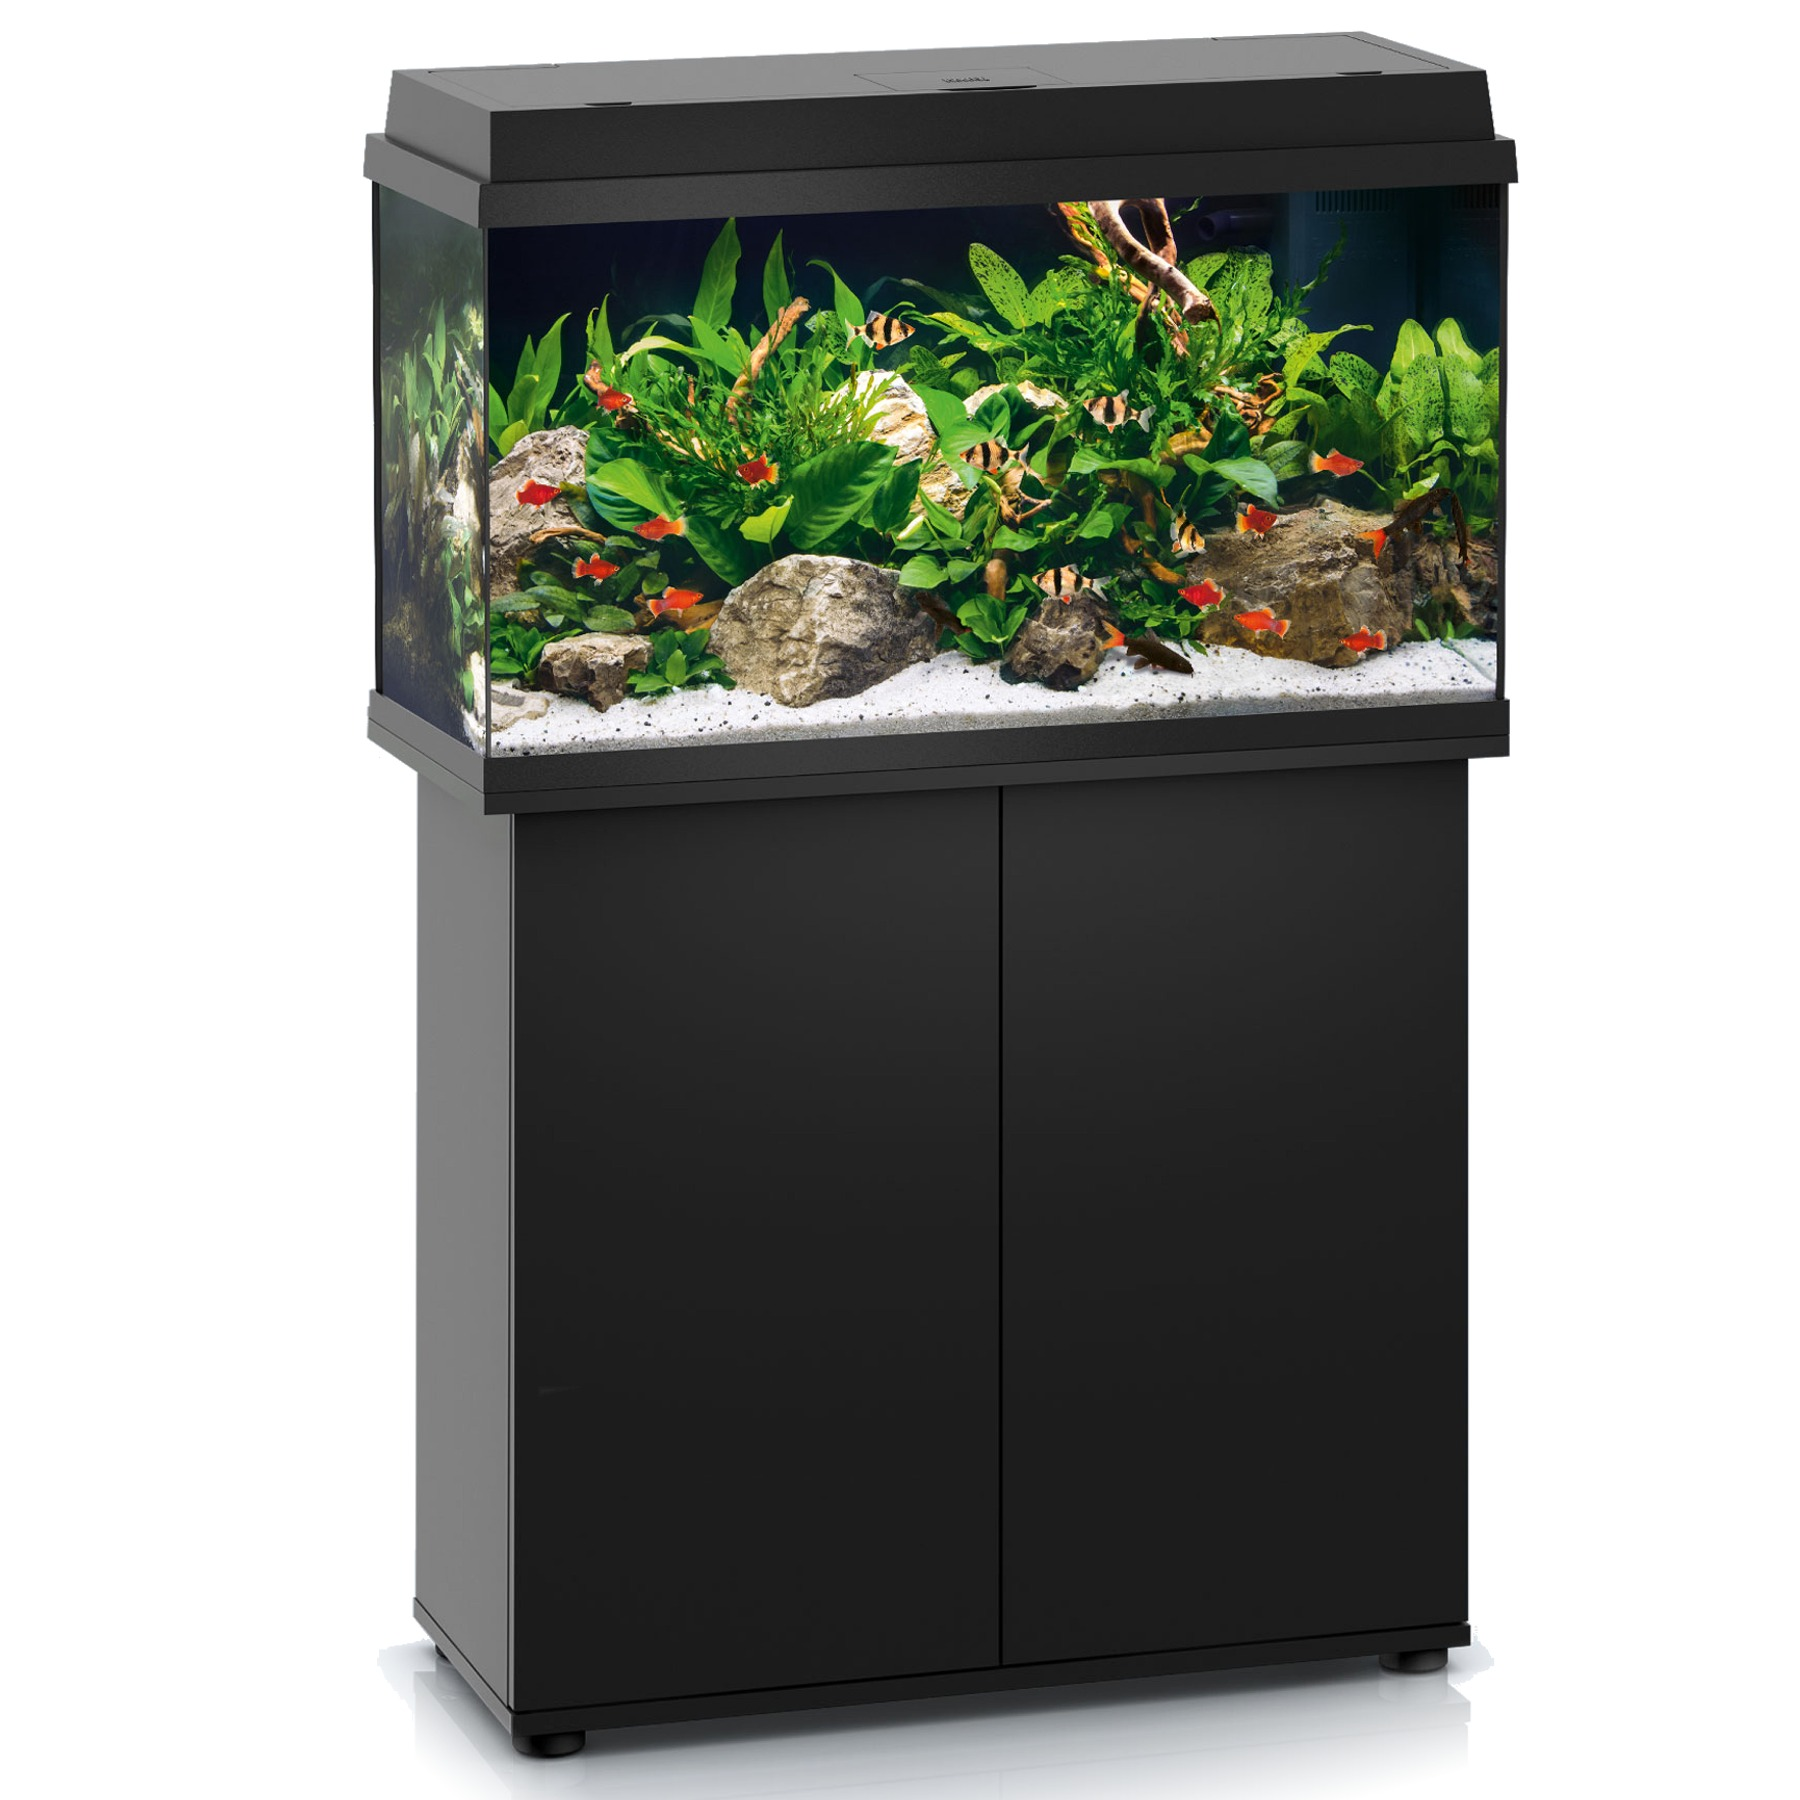 Vente aquarium juwel primo 110 led prix discount sur for Aquarium prix